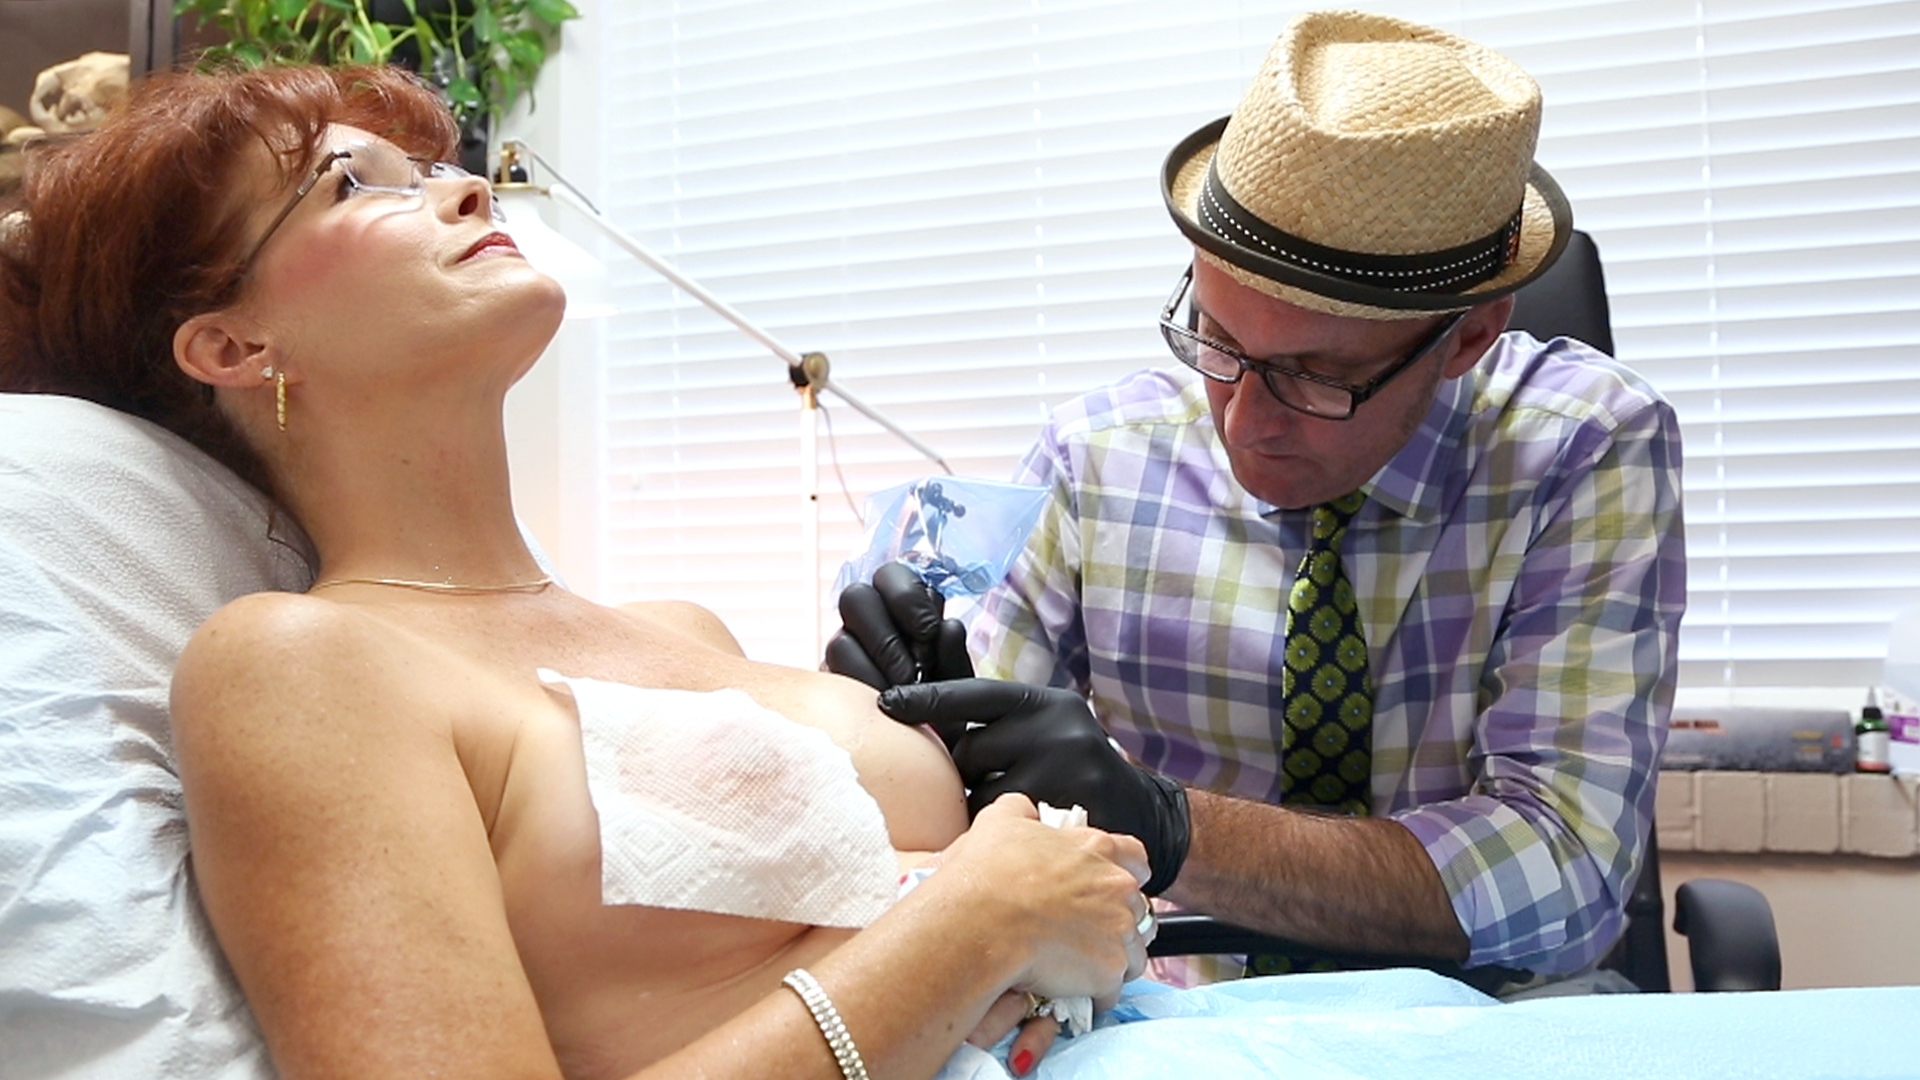 Today show breast surgery